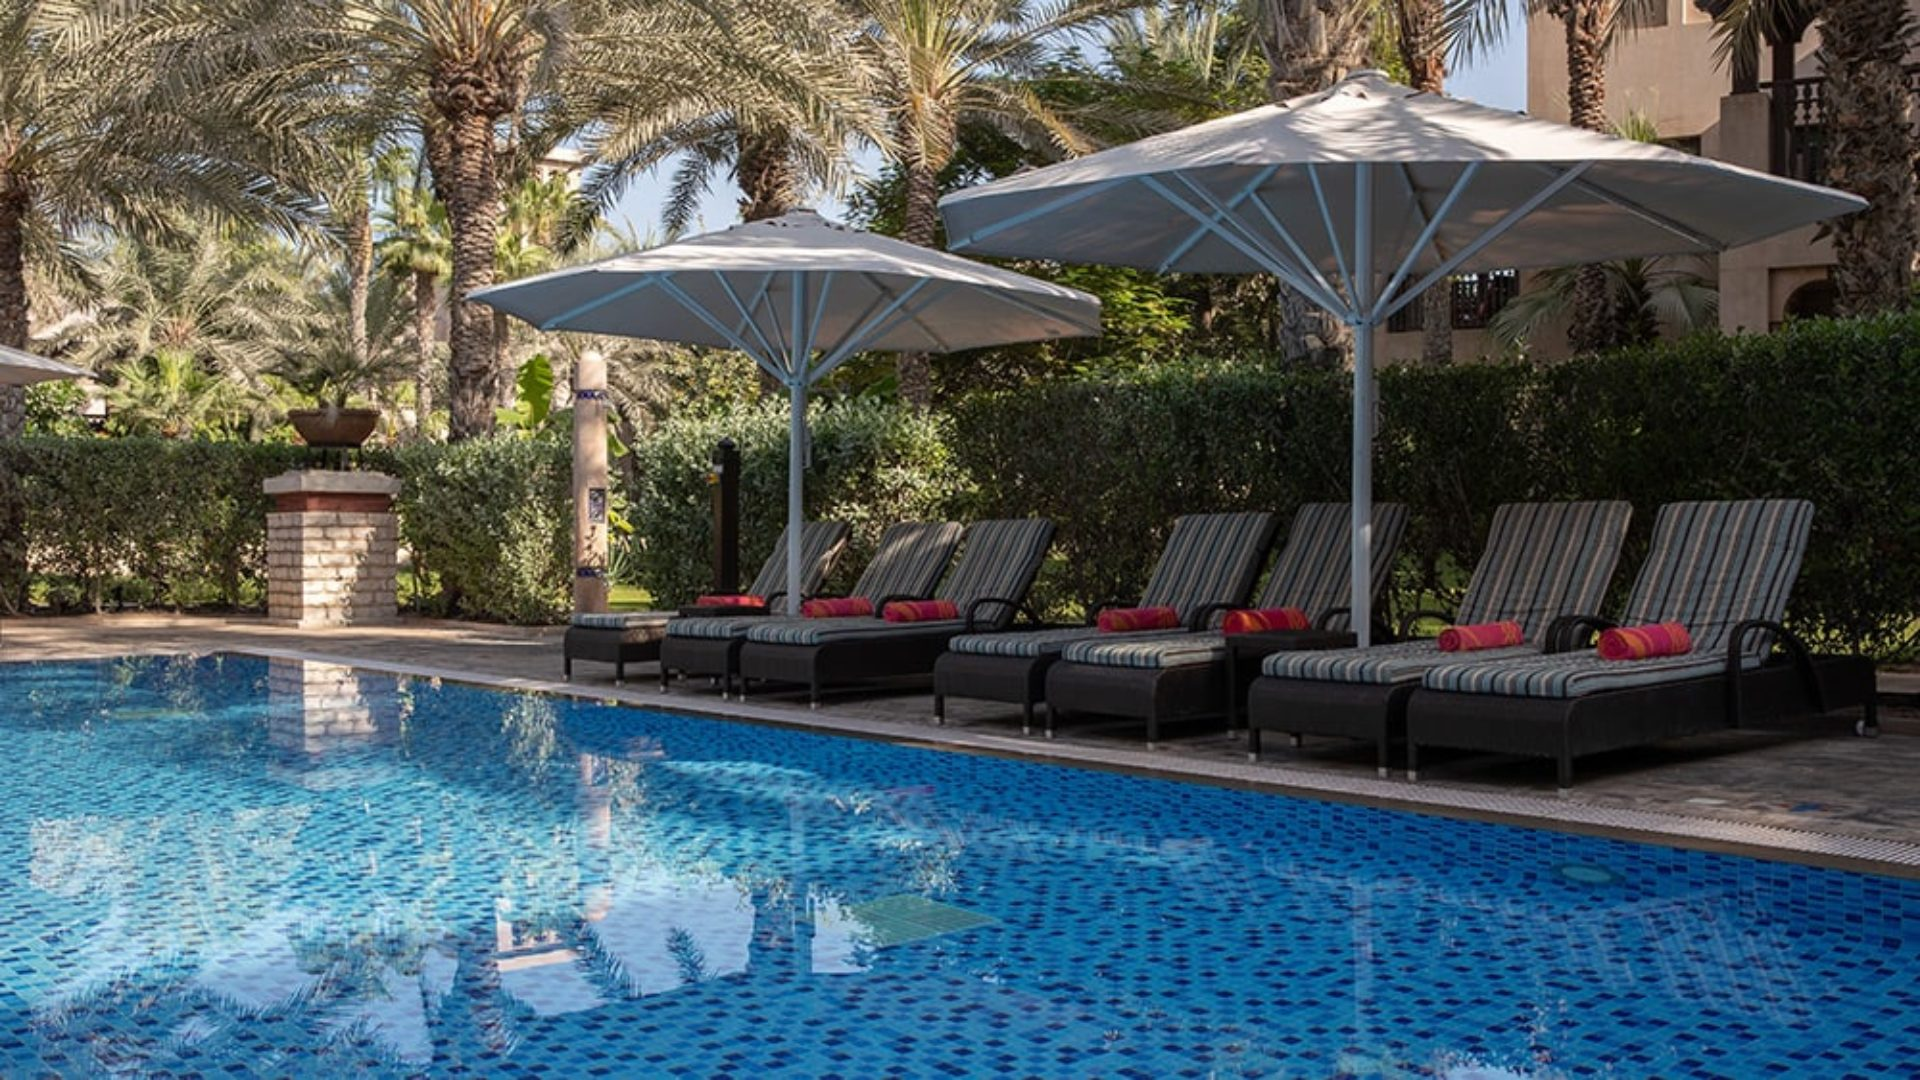 Shared pool with sun loungers at Jumeirah Dar Al Masyaf